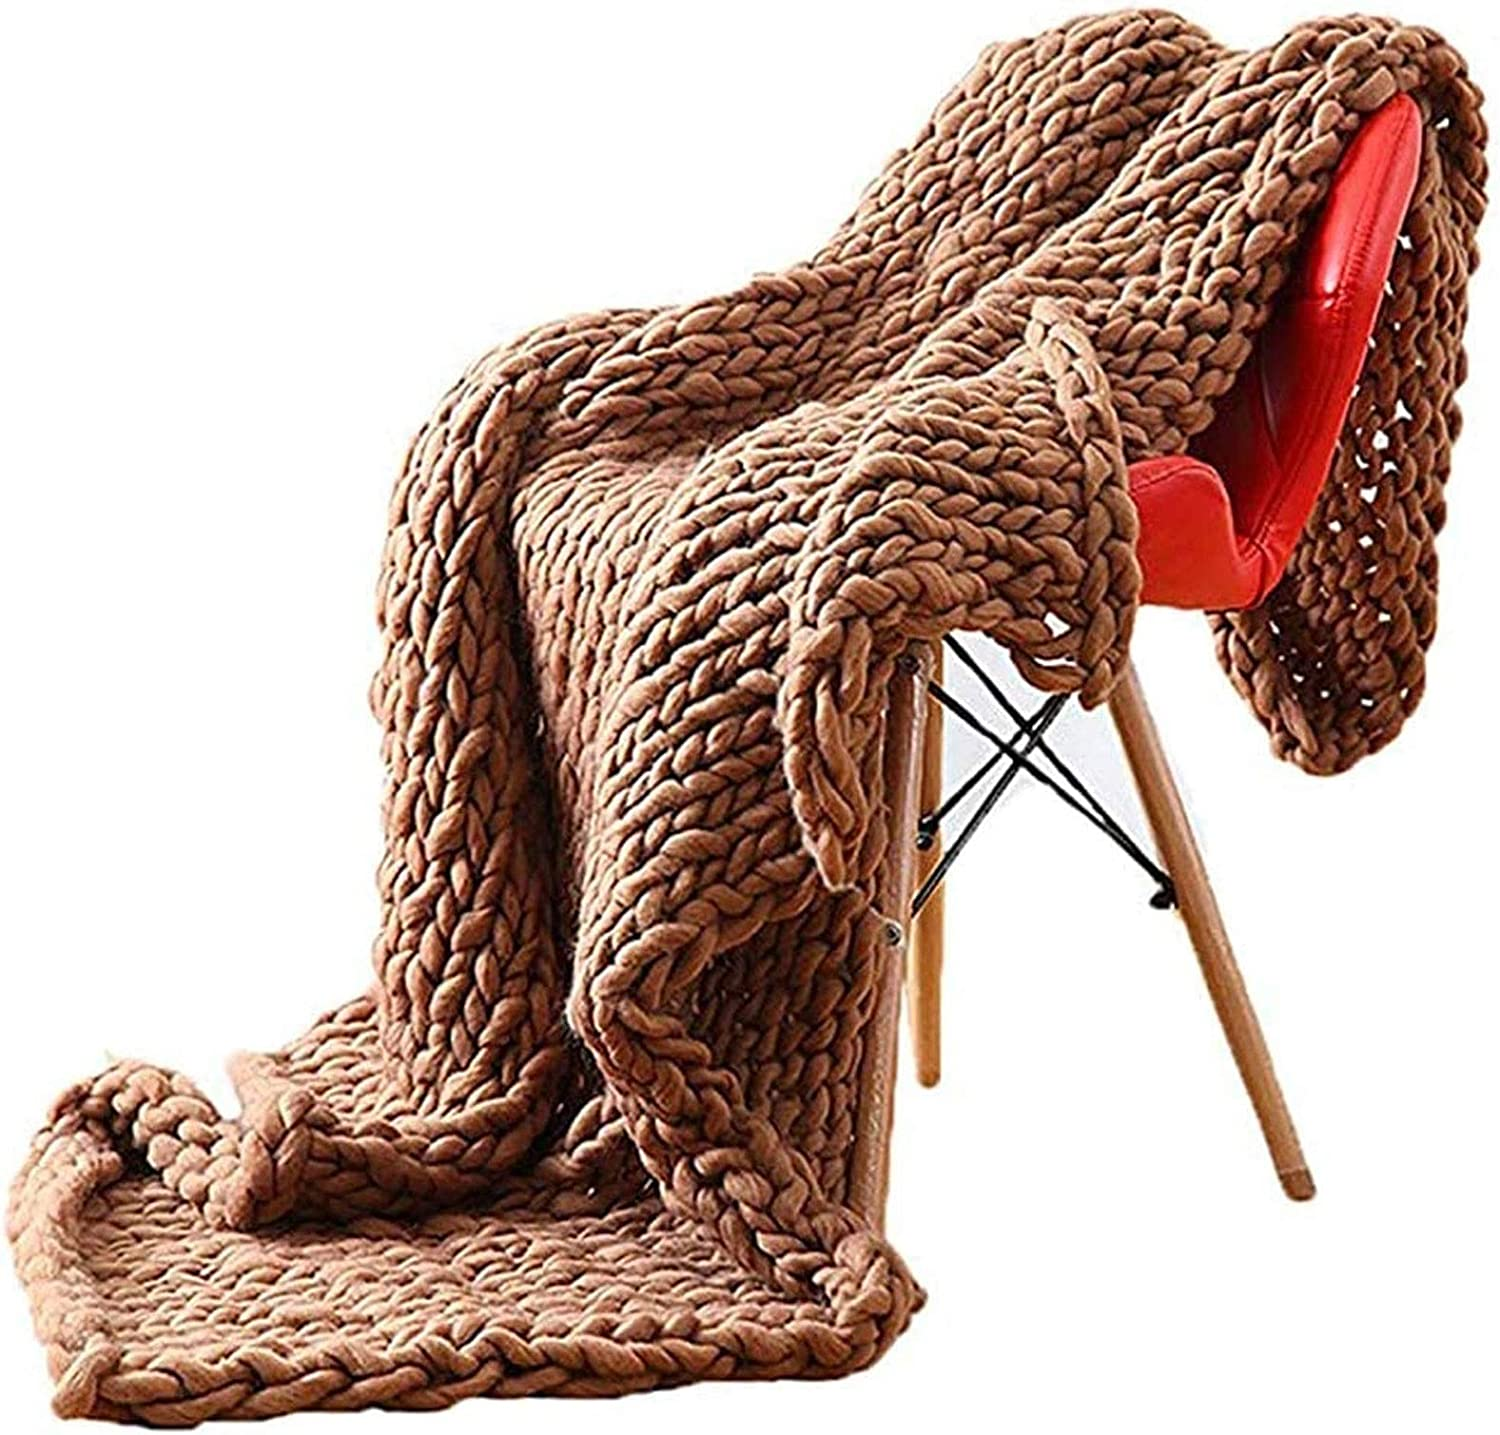 YXYH Max 75% OFF 2021 spring and summer new Handmade Chunky Knit Blanket Thr Bulky Large Thick Knitting